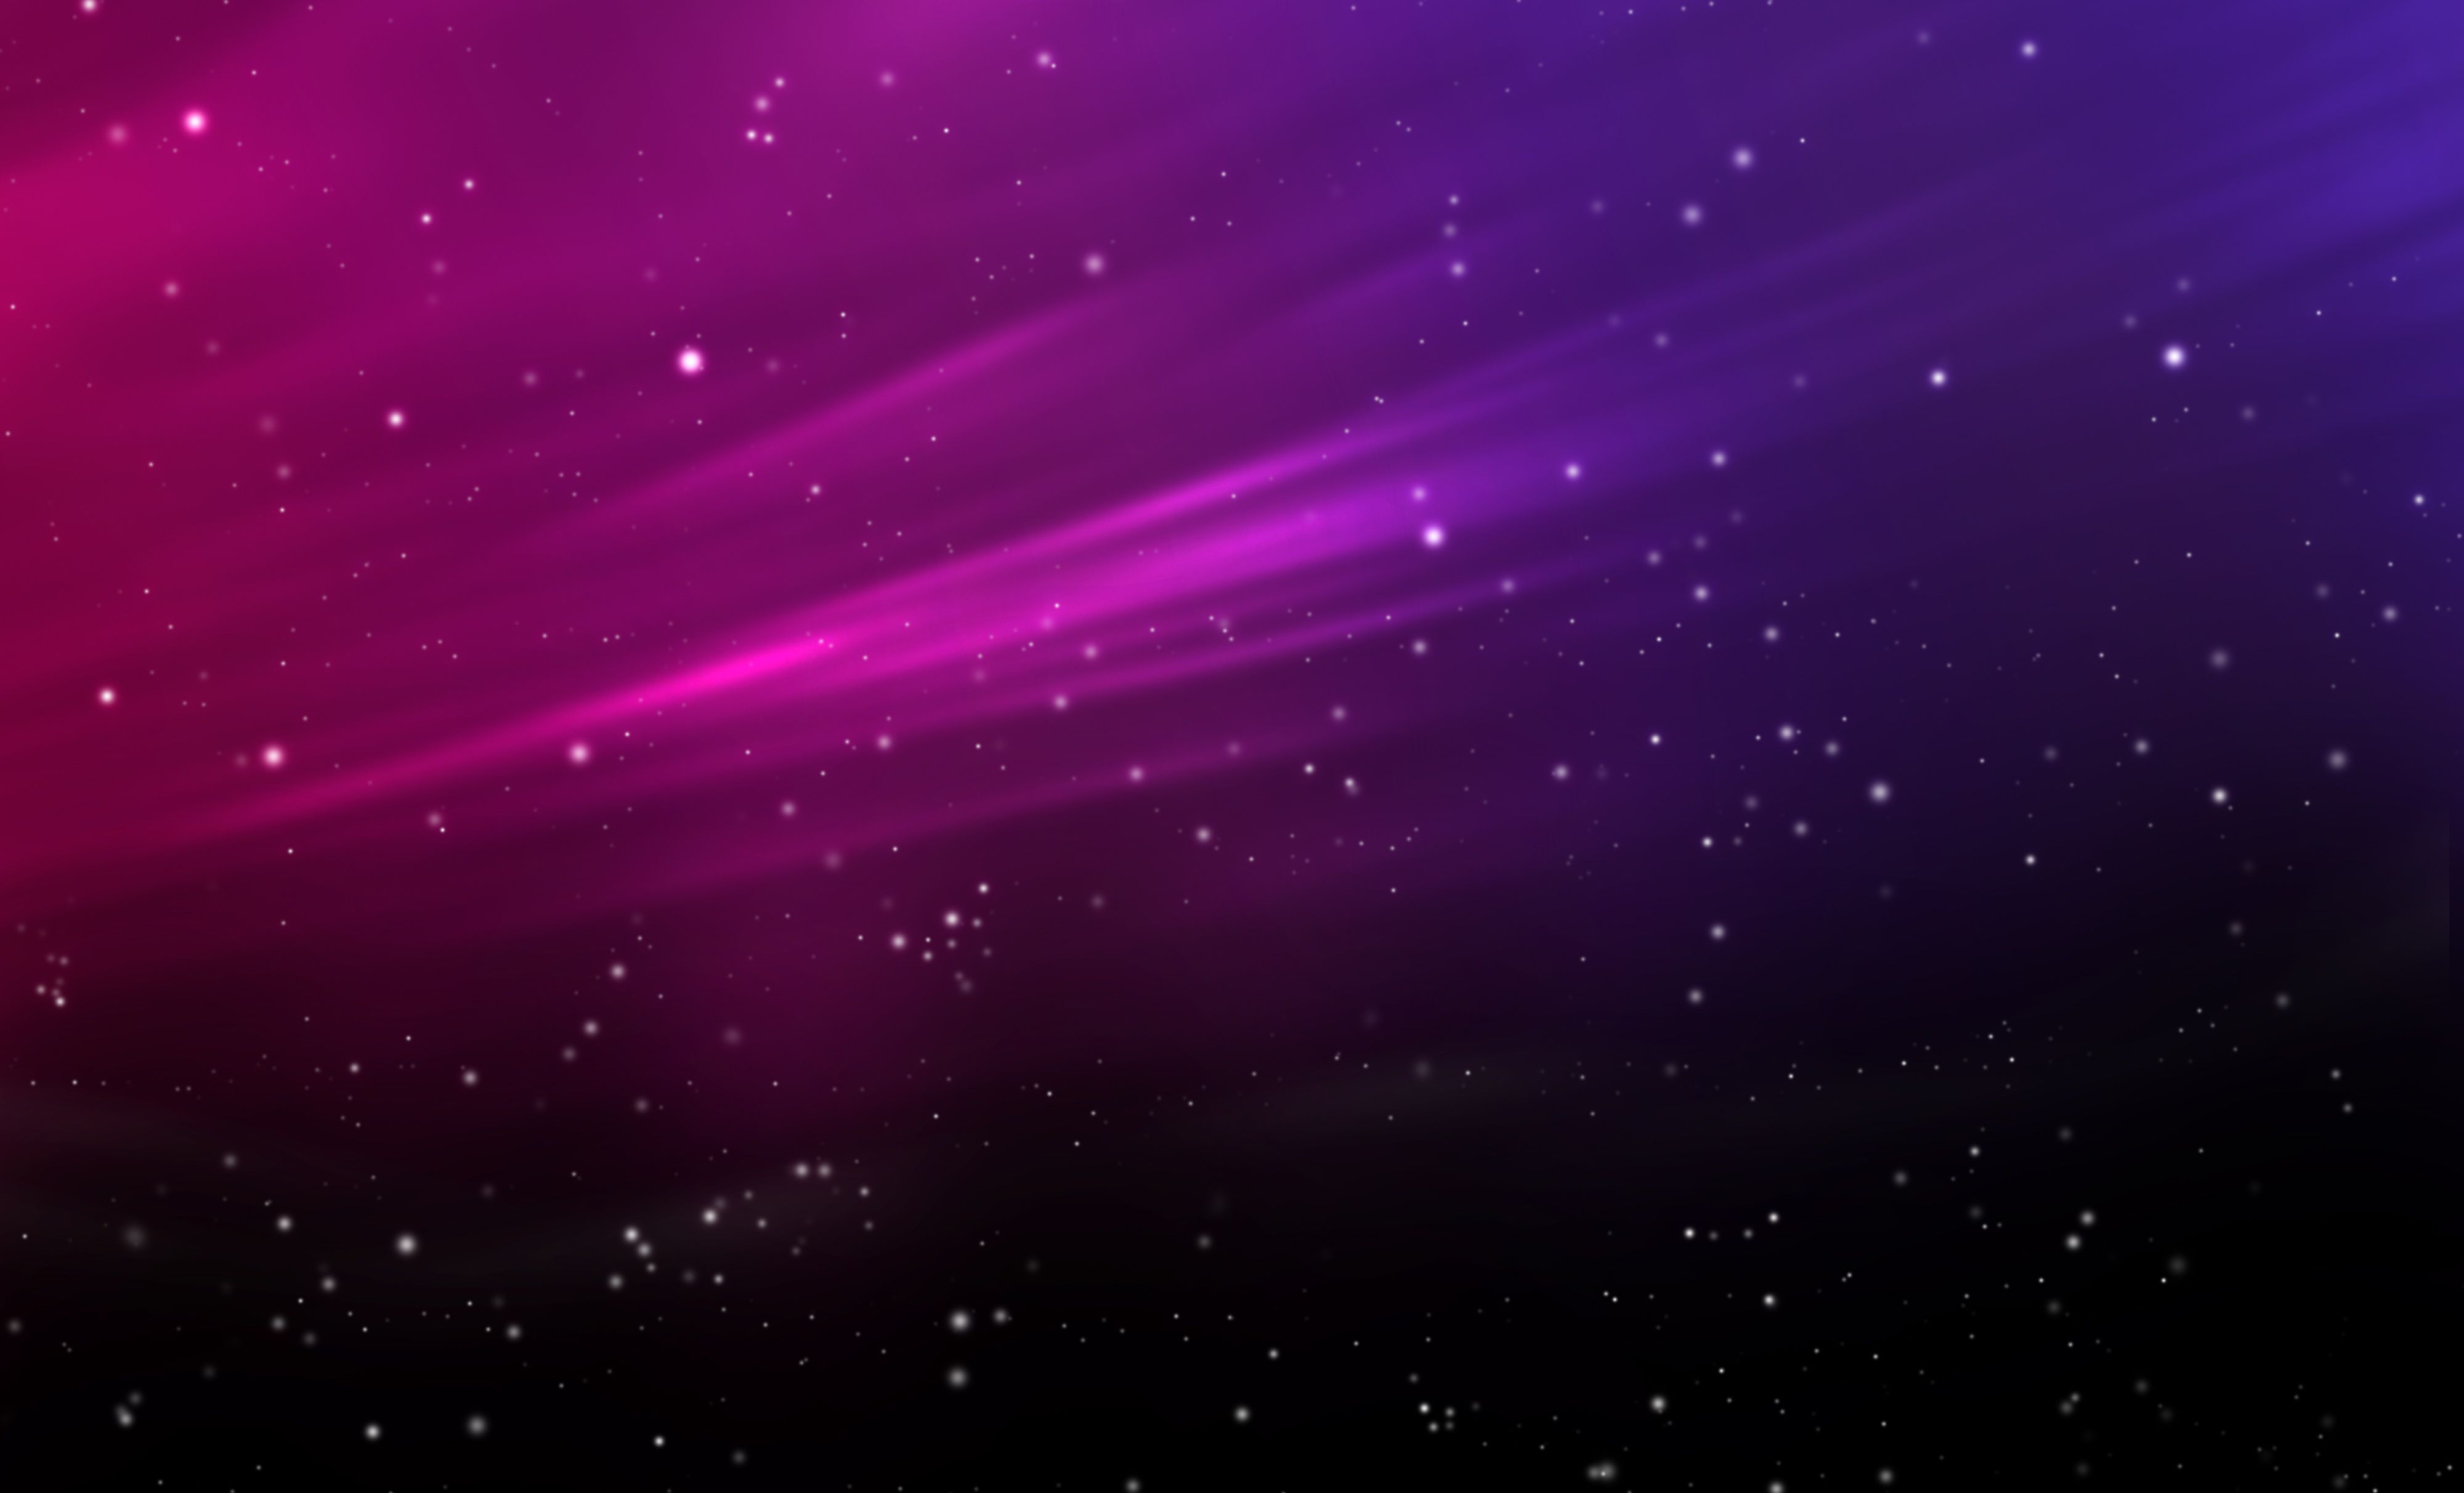 Purple Wallpapers Group  73   39 High Definition Purple Wallpaper Images for Free Download